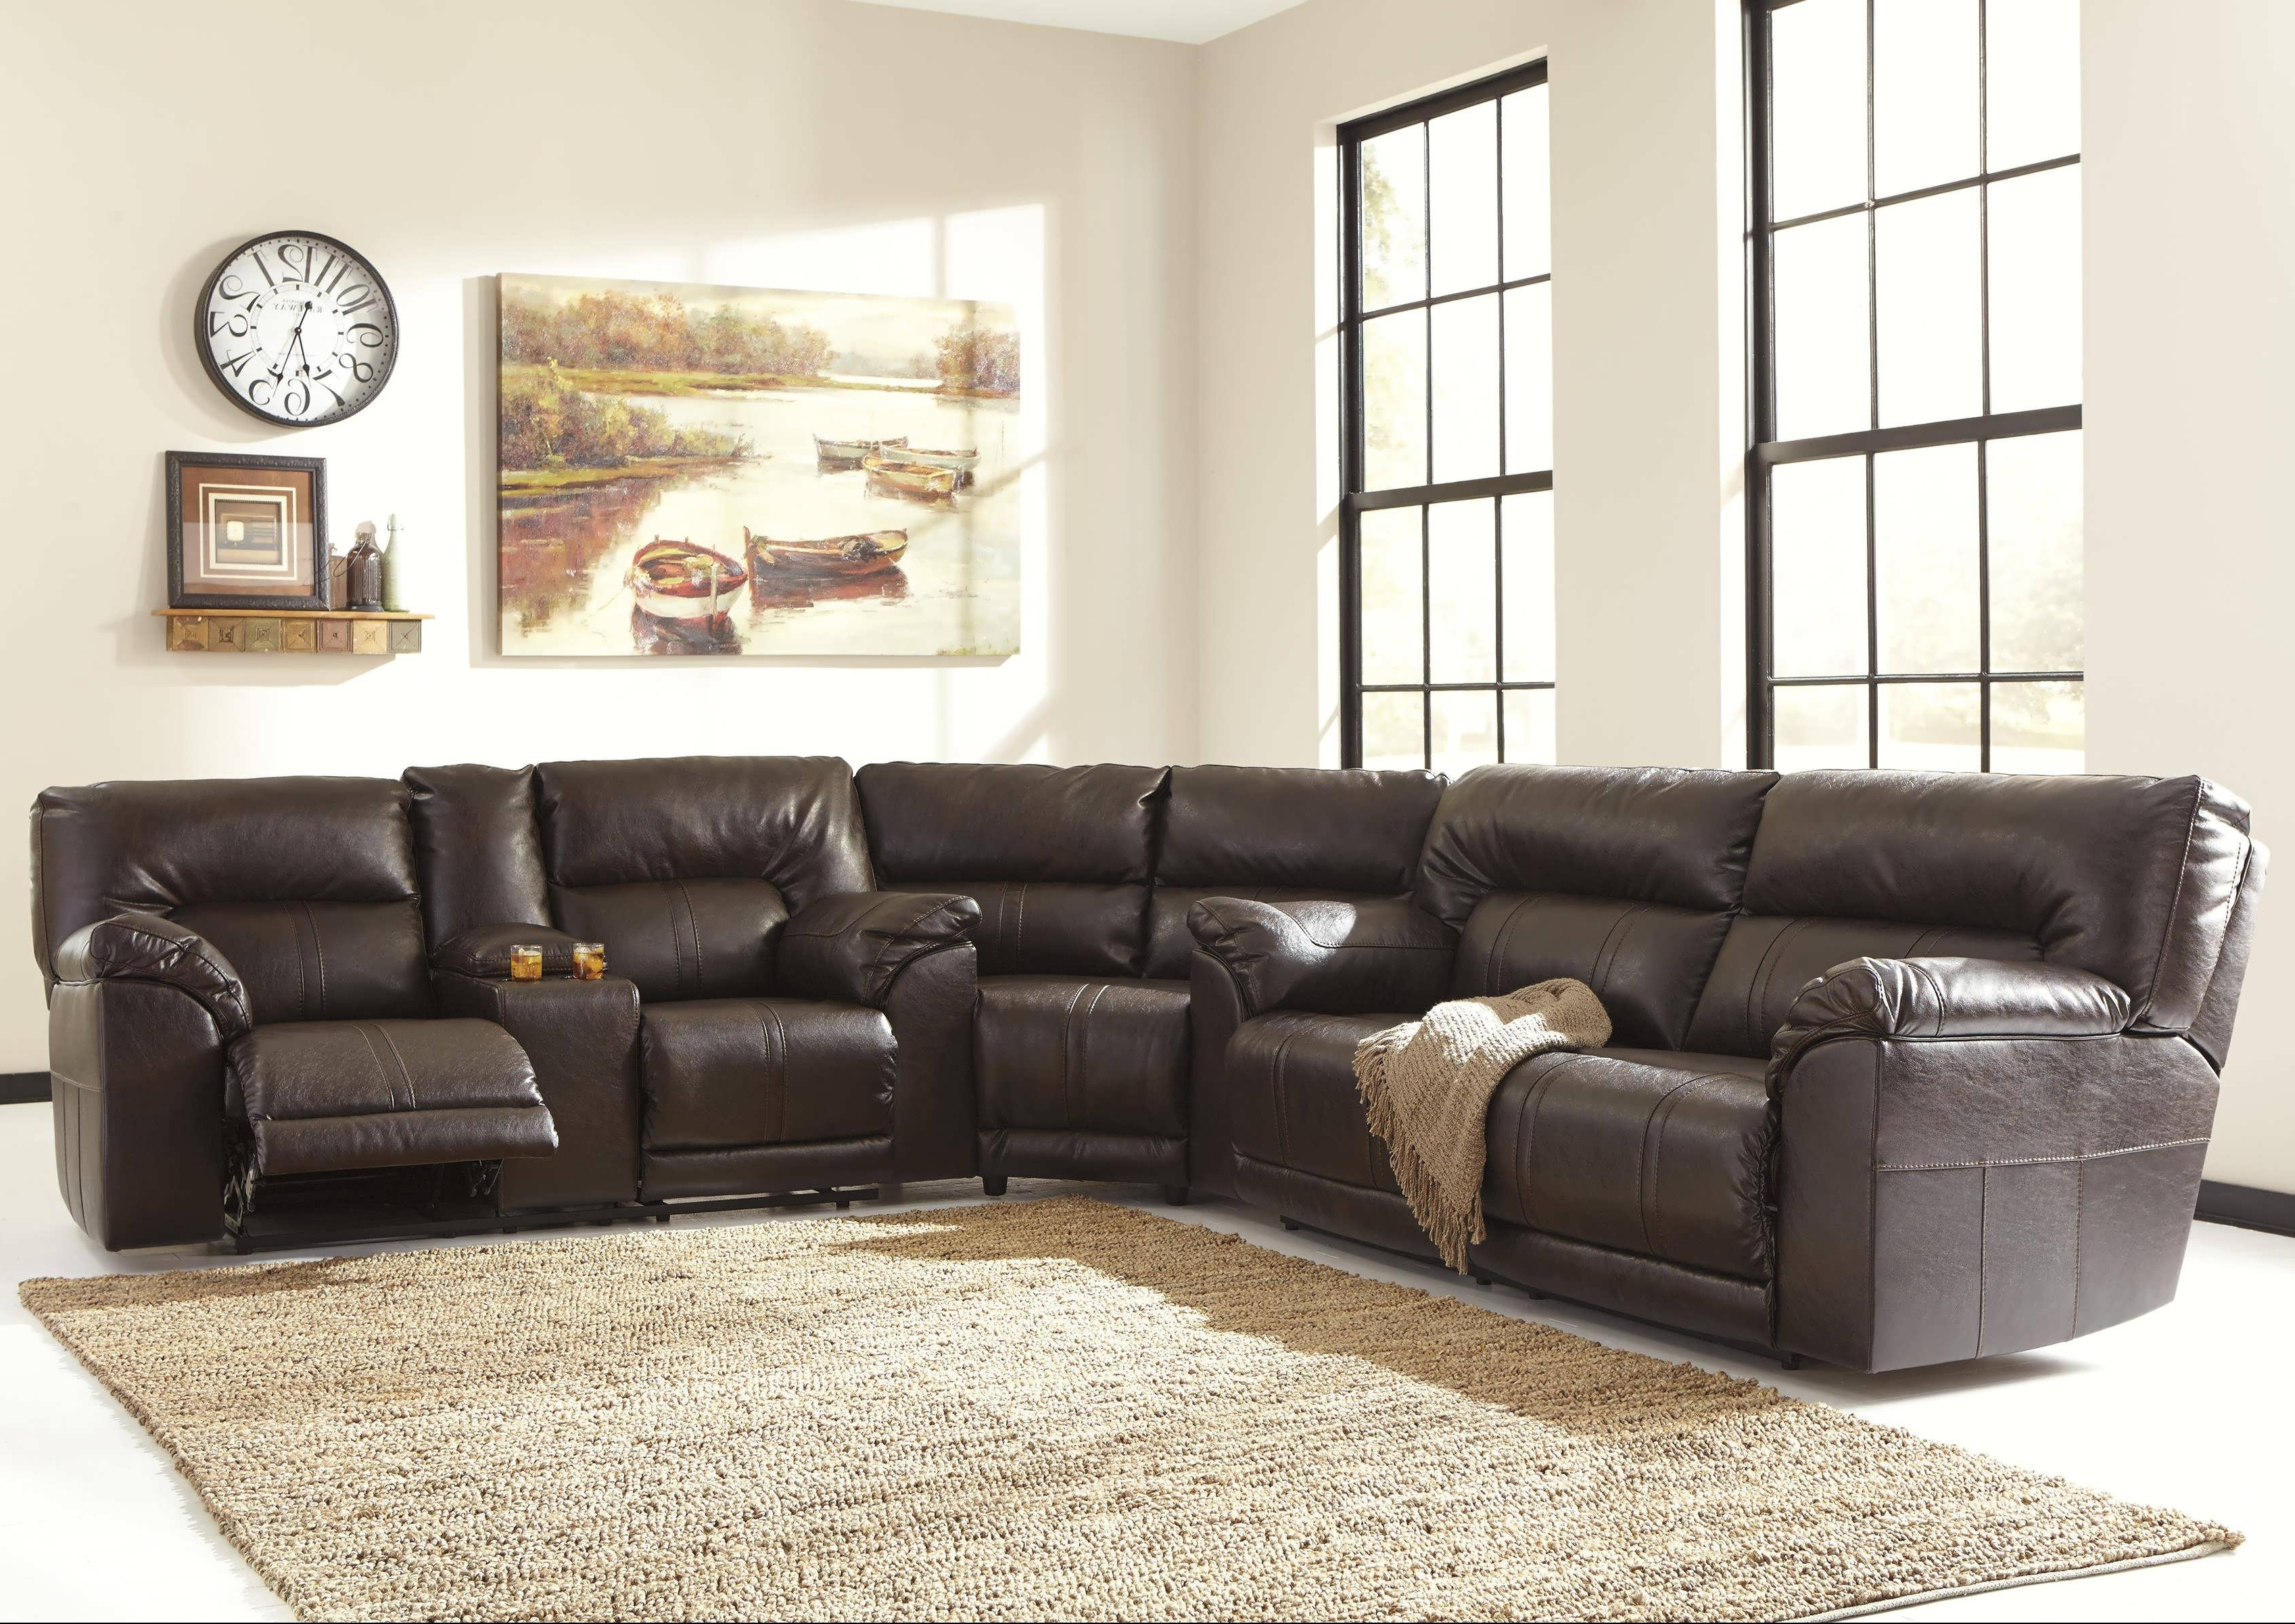 Favorite Sofa : Oversized Sectionals Gray Sectional Leather Sectional Sofa Intended For Genuine Leather Sectionals With Chaise (View 4 of 15)